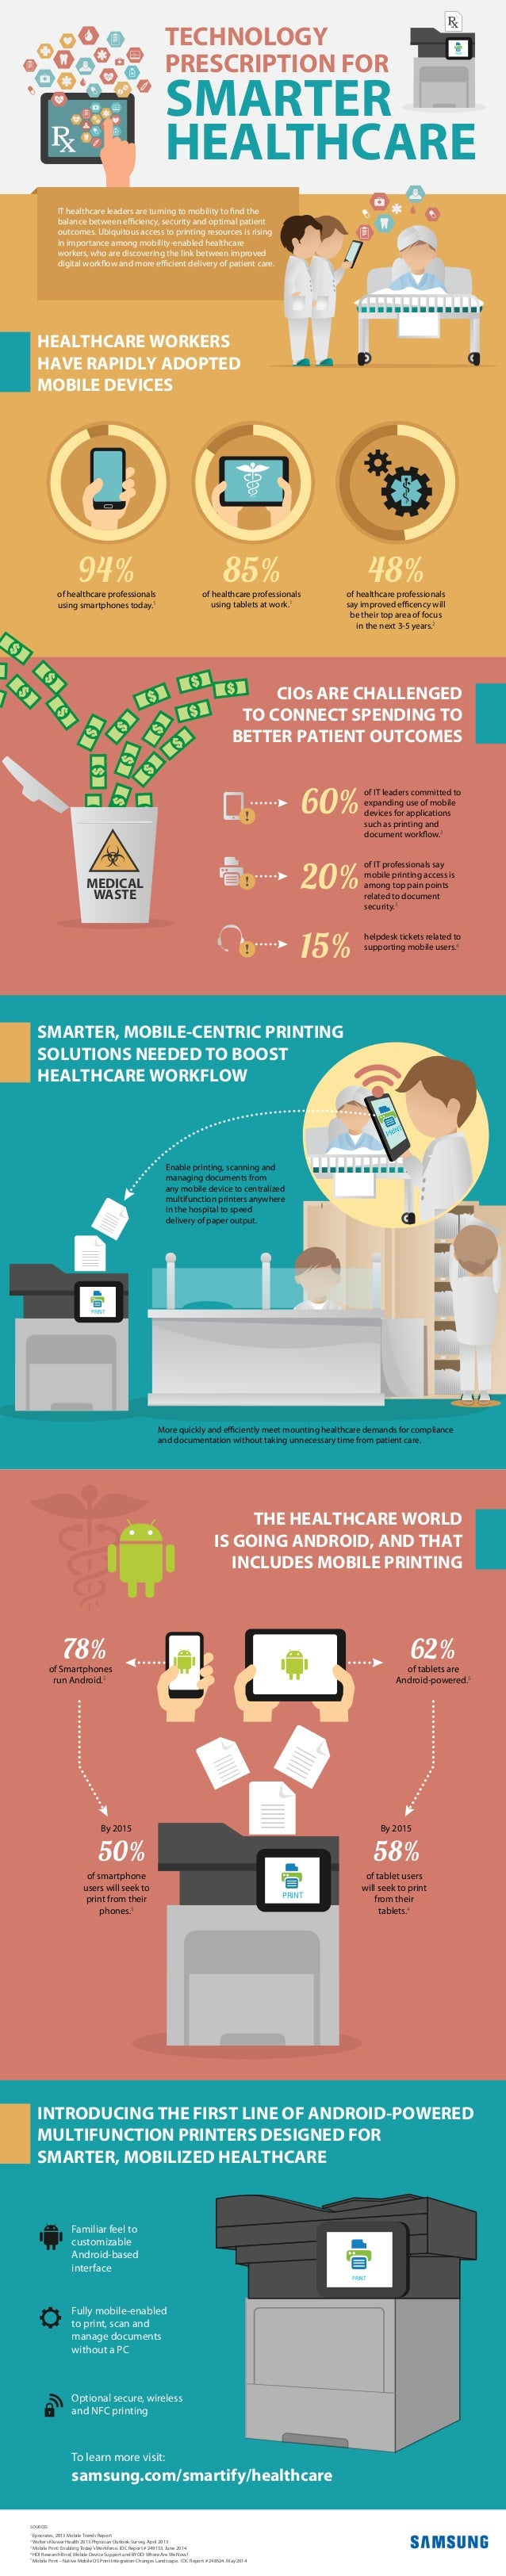 TECHNOLOGY PRESCRIPTION FOR SMARTER HEALTHCARE HEALTHCARE WORKERS HAVE RAPIDLY ADOPTED MOBILE DEVICES IT healthcare leader...